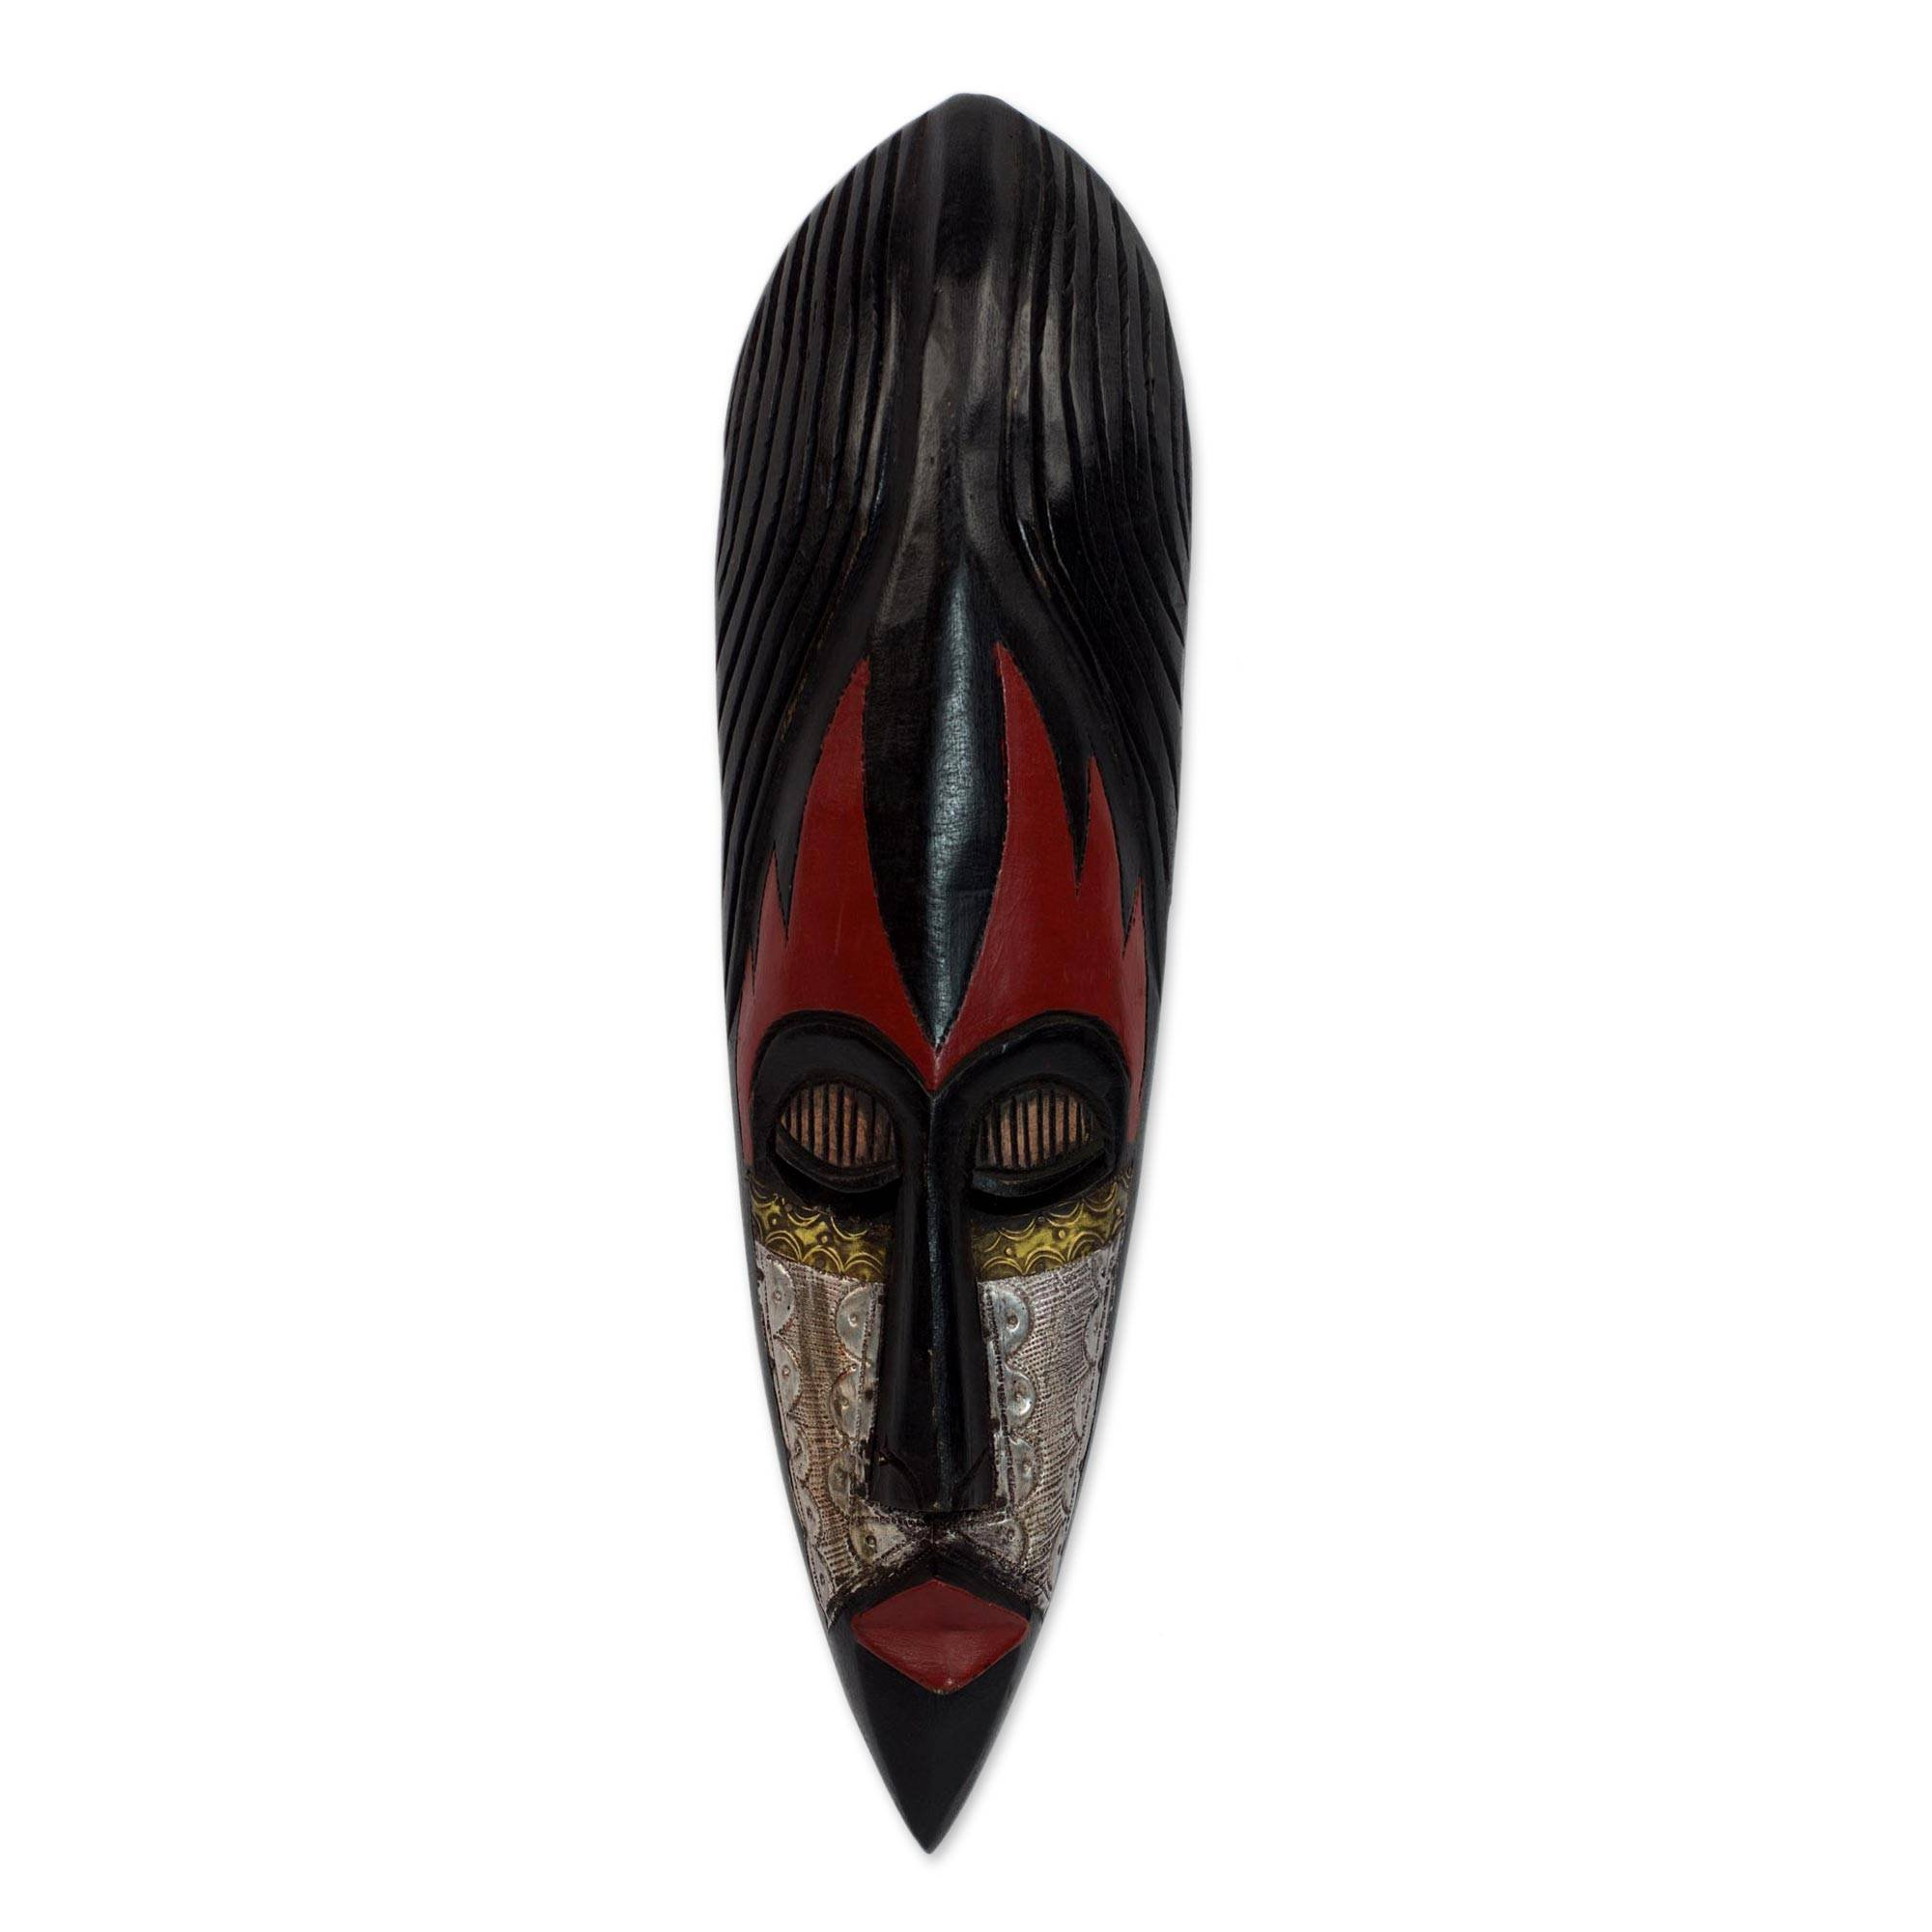 NOVICA Black and Red Hand Carved Nigerian Wood Wall Mask with Aluminum Accents, Fulani Maiden' by NOVICA